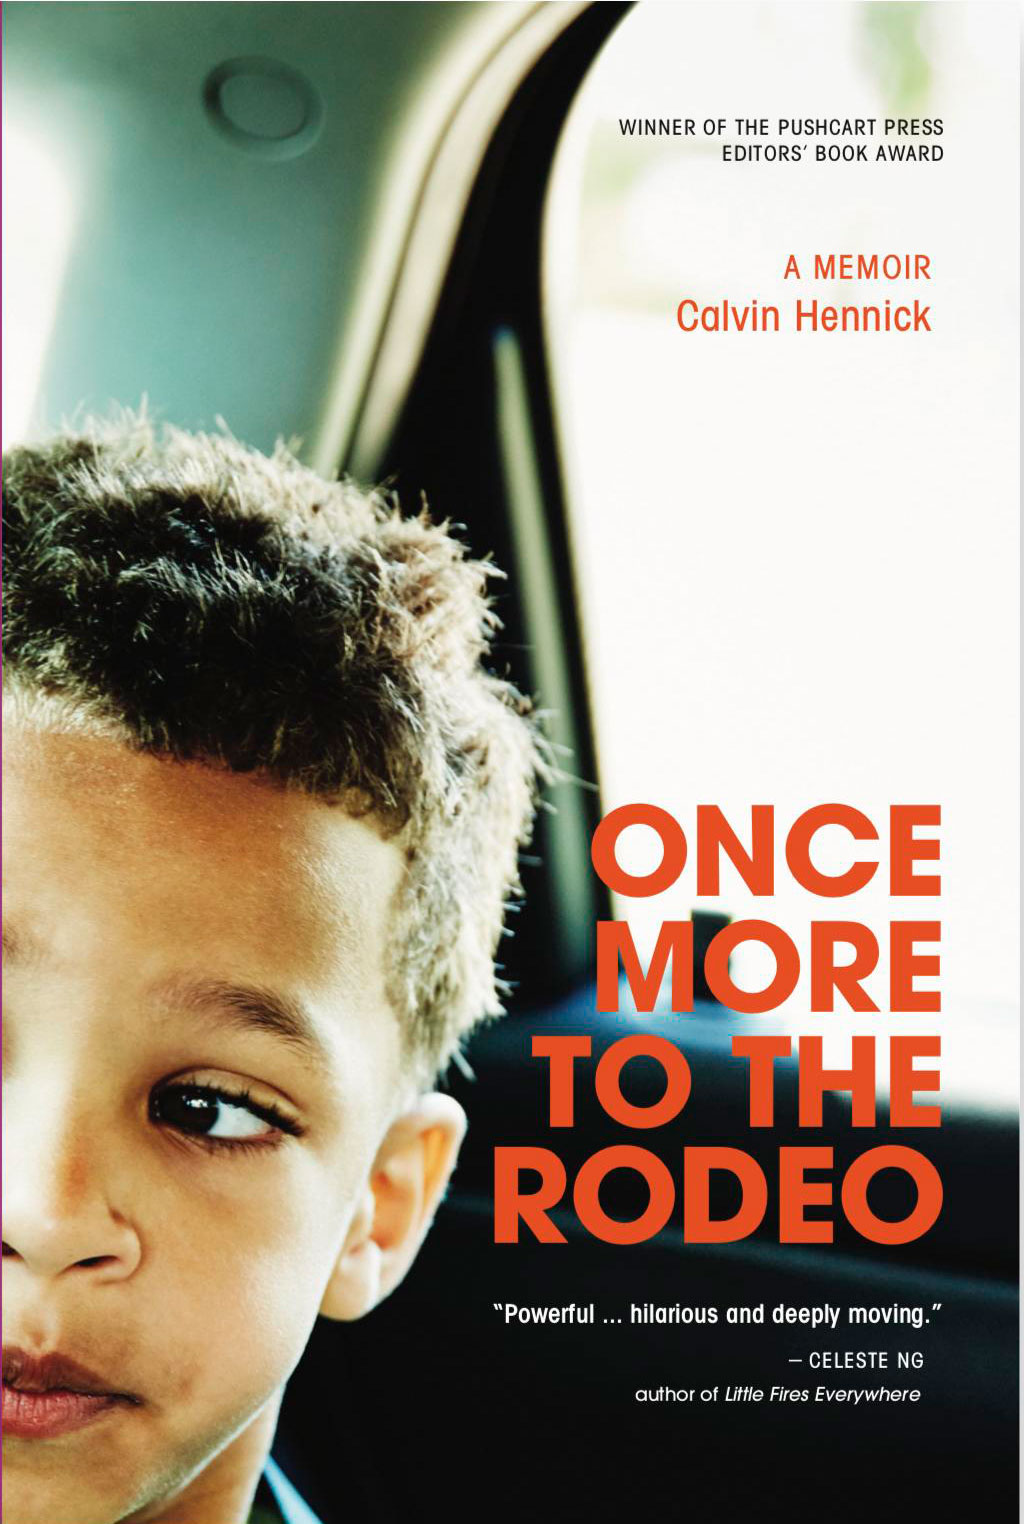 Once More to the Rodeo book